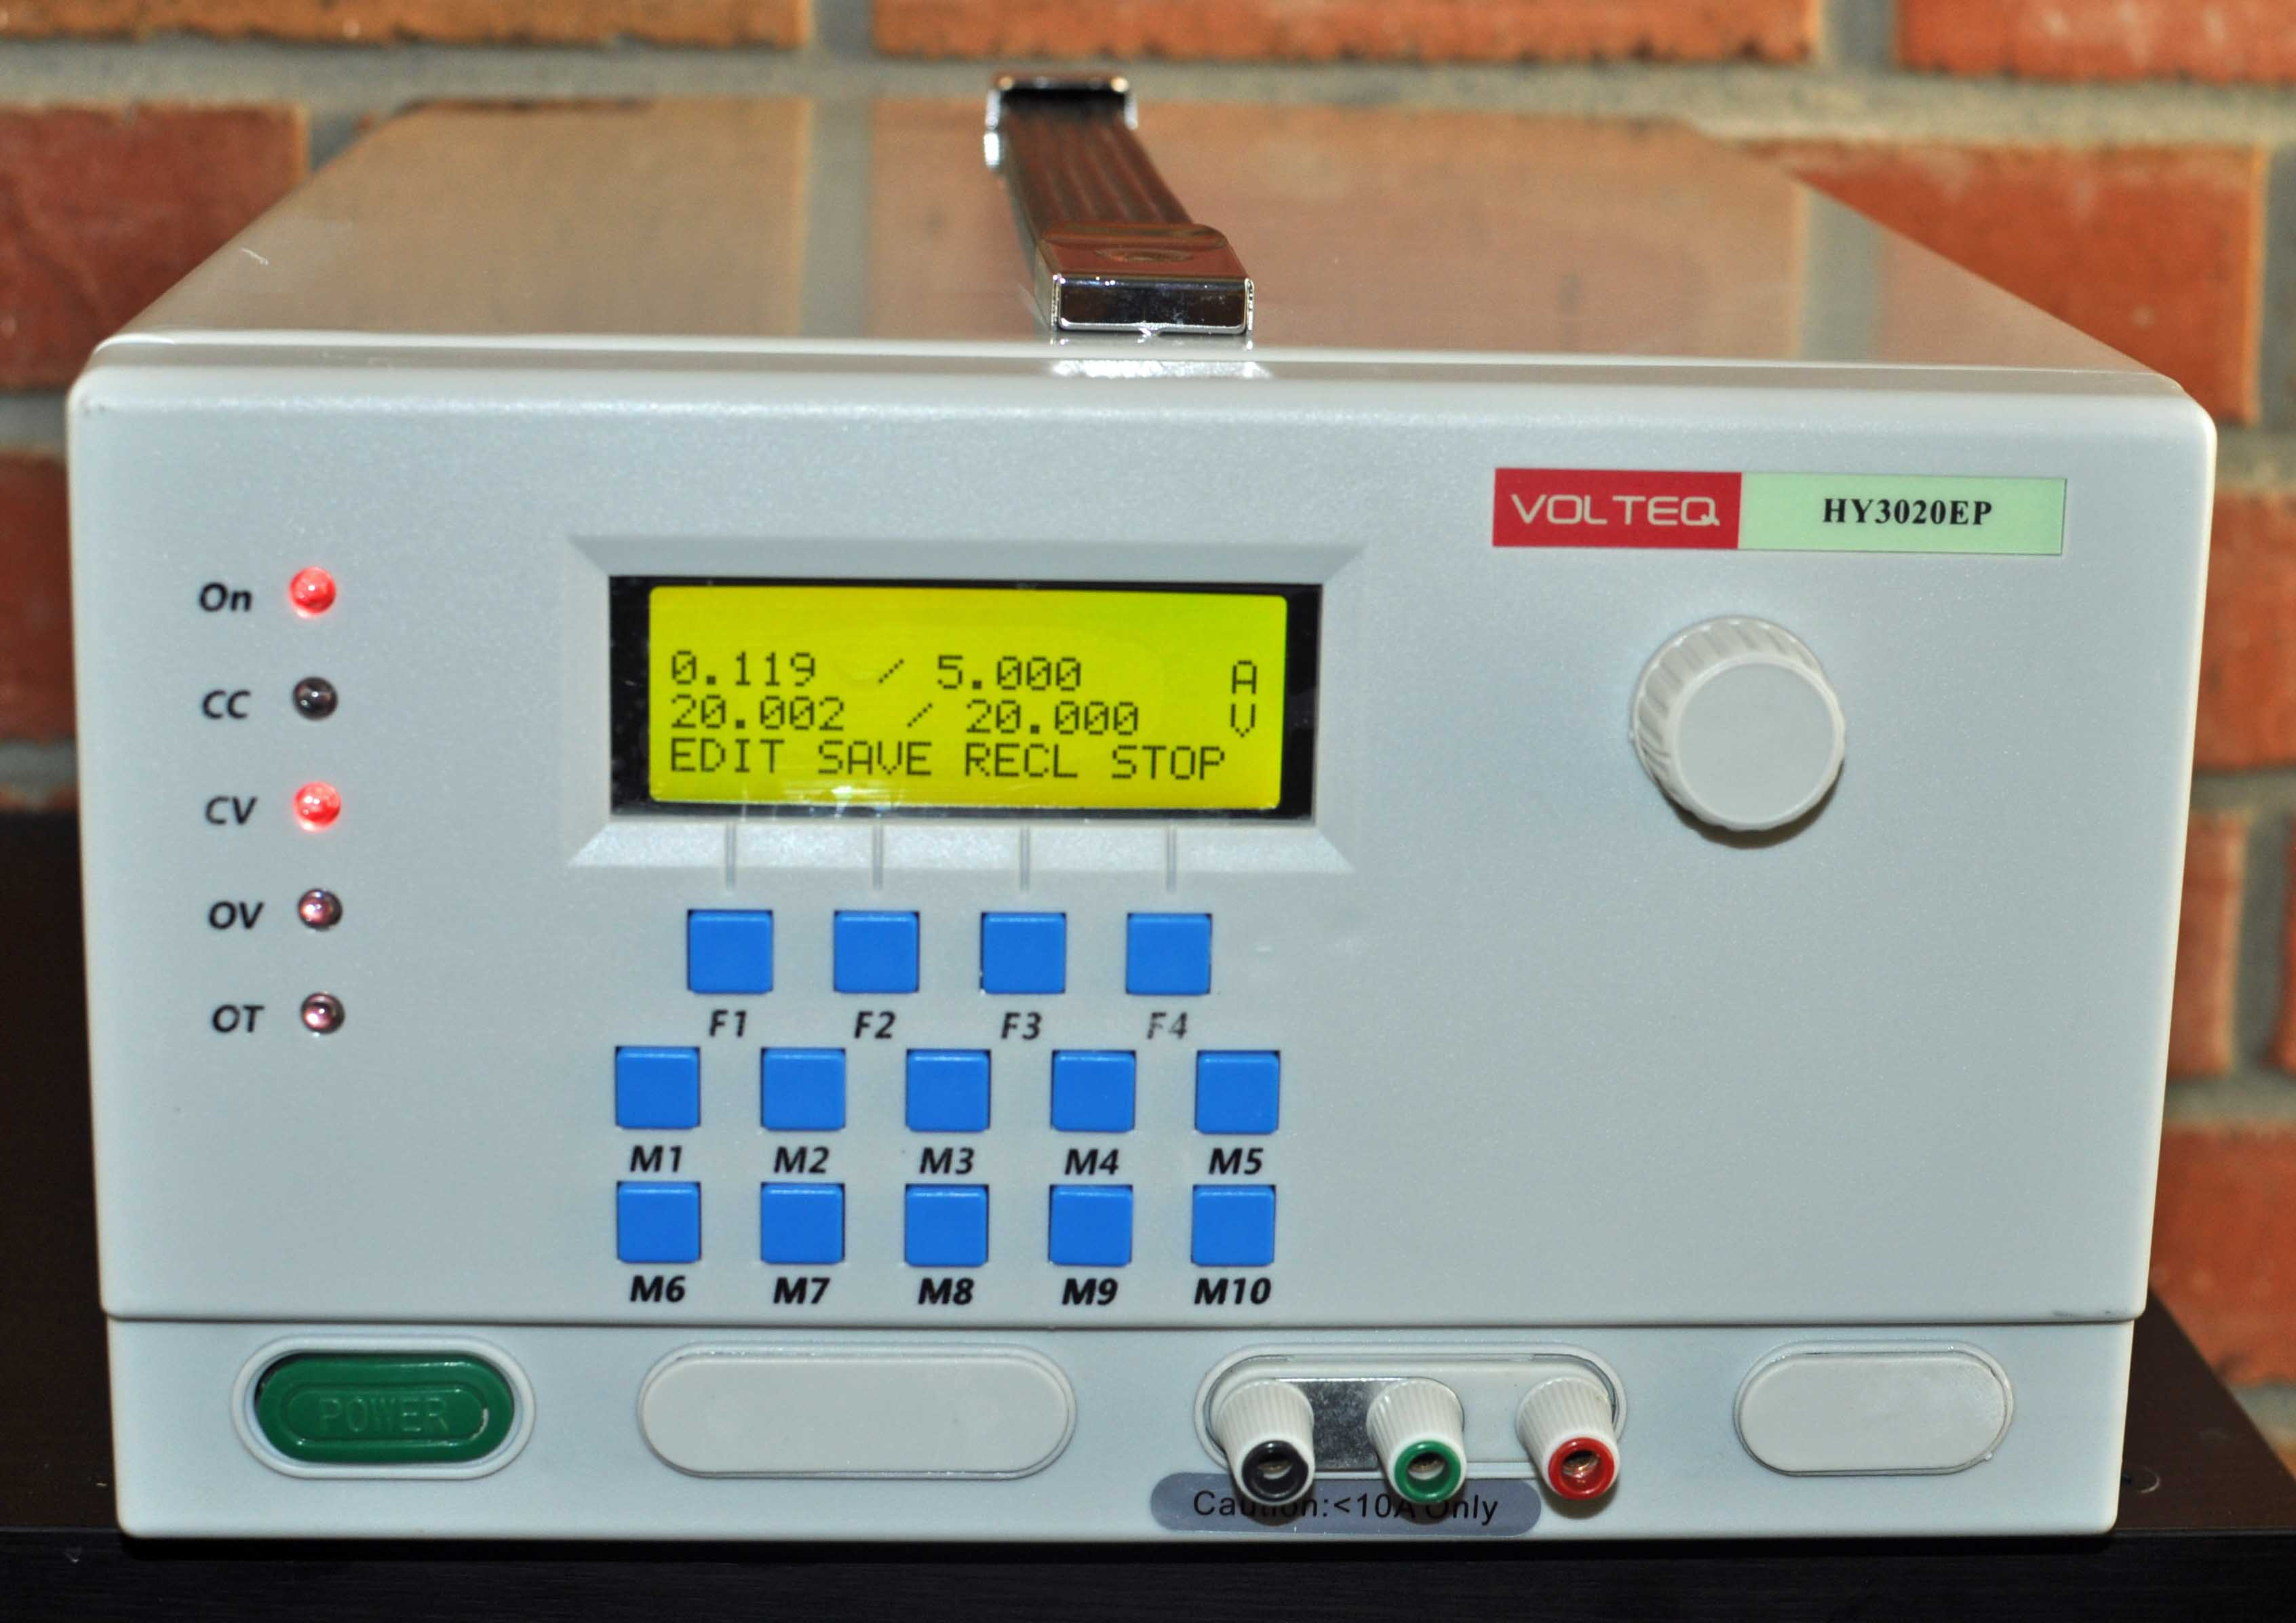 Programmable DC Power Supply HY3020EP 0-30V 0-20A - Volteq